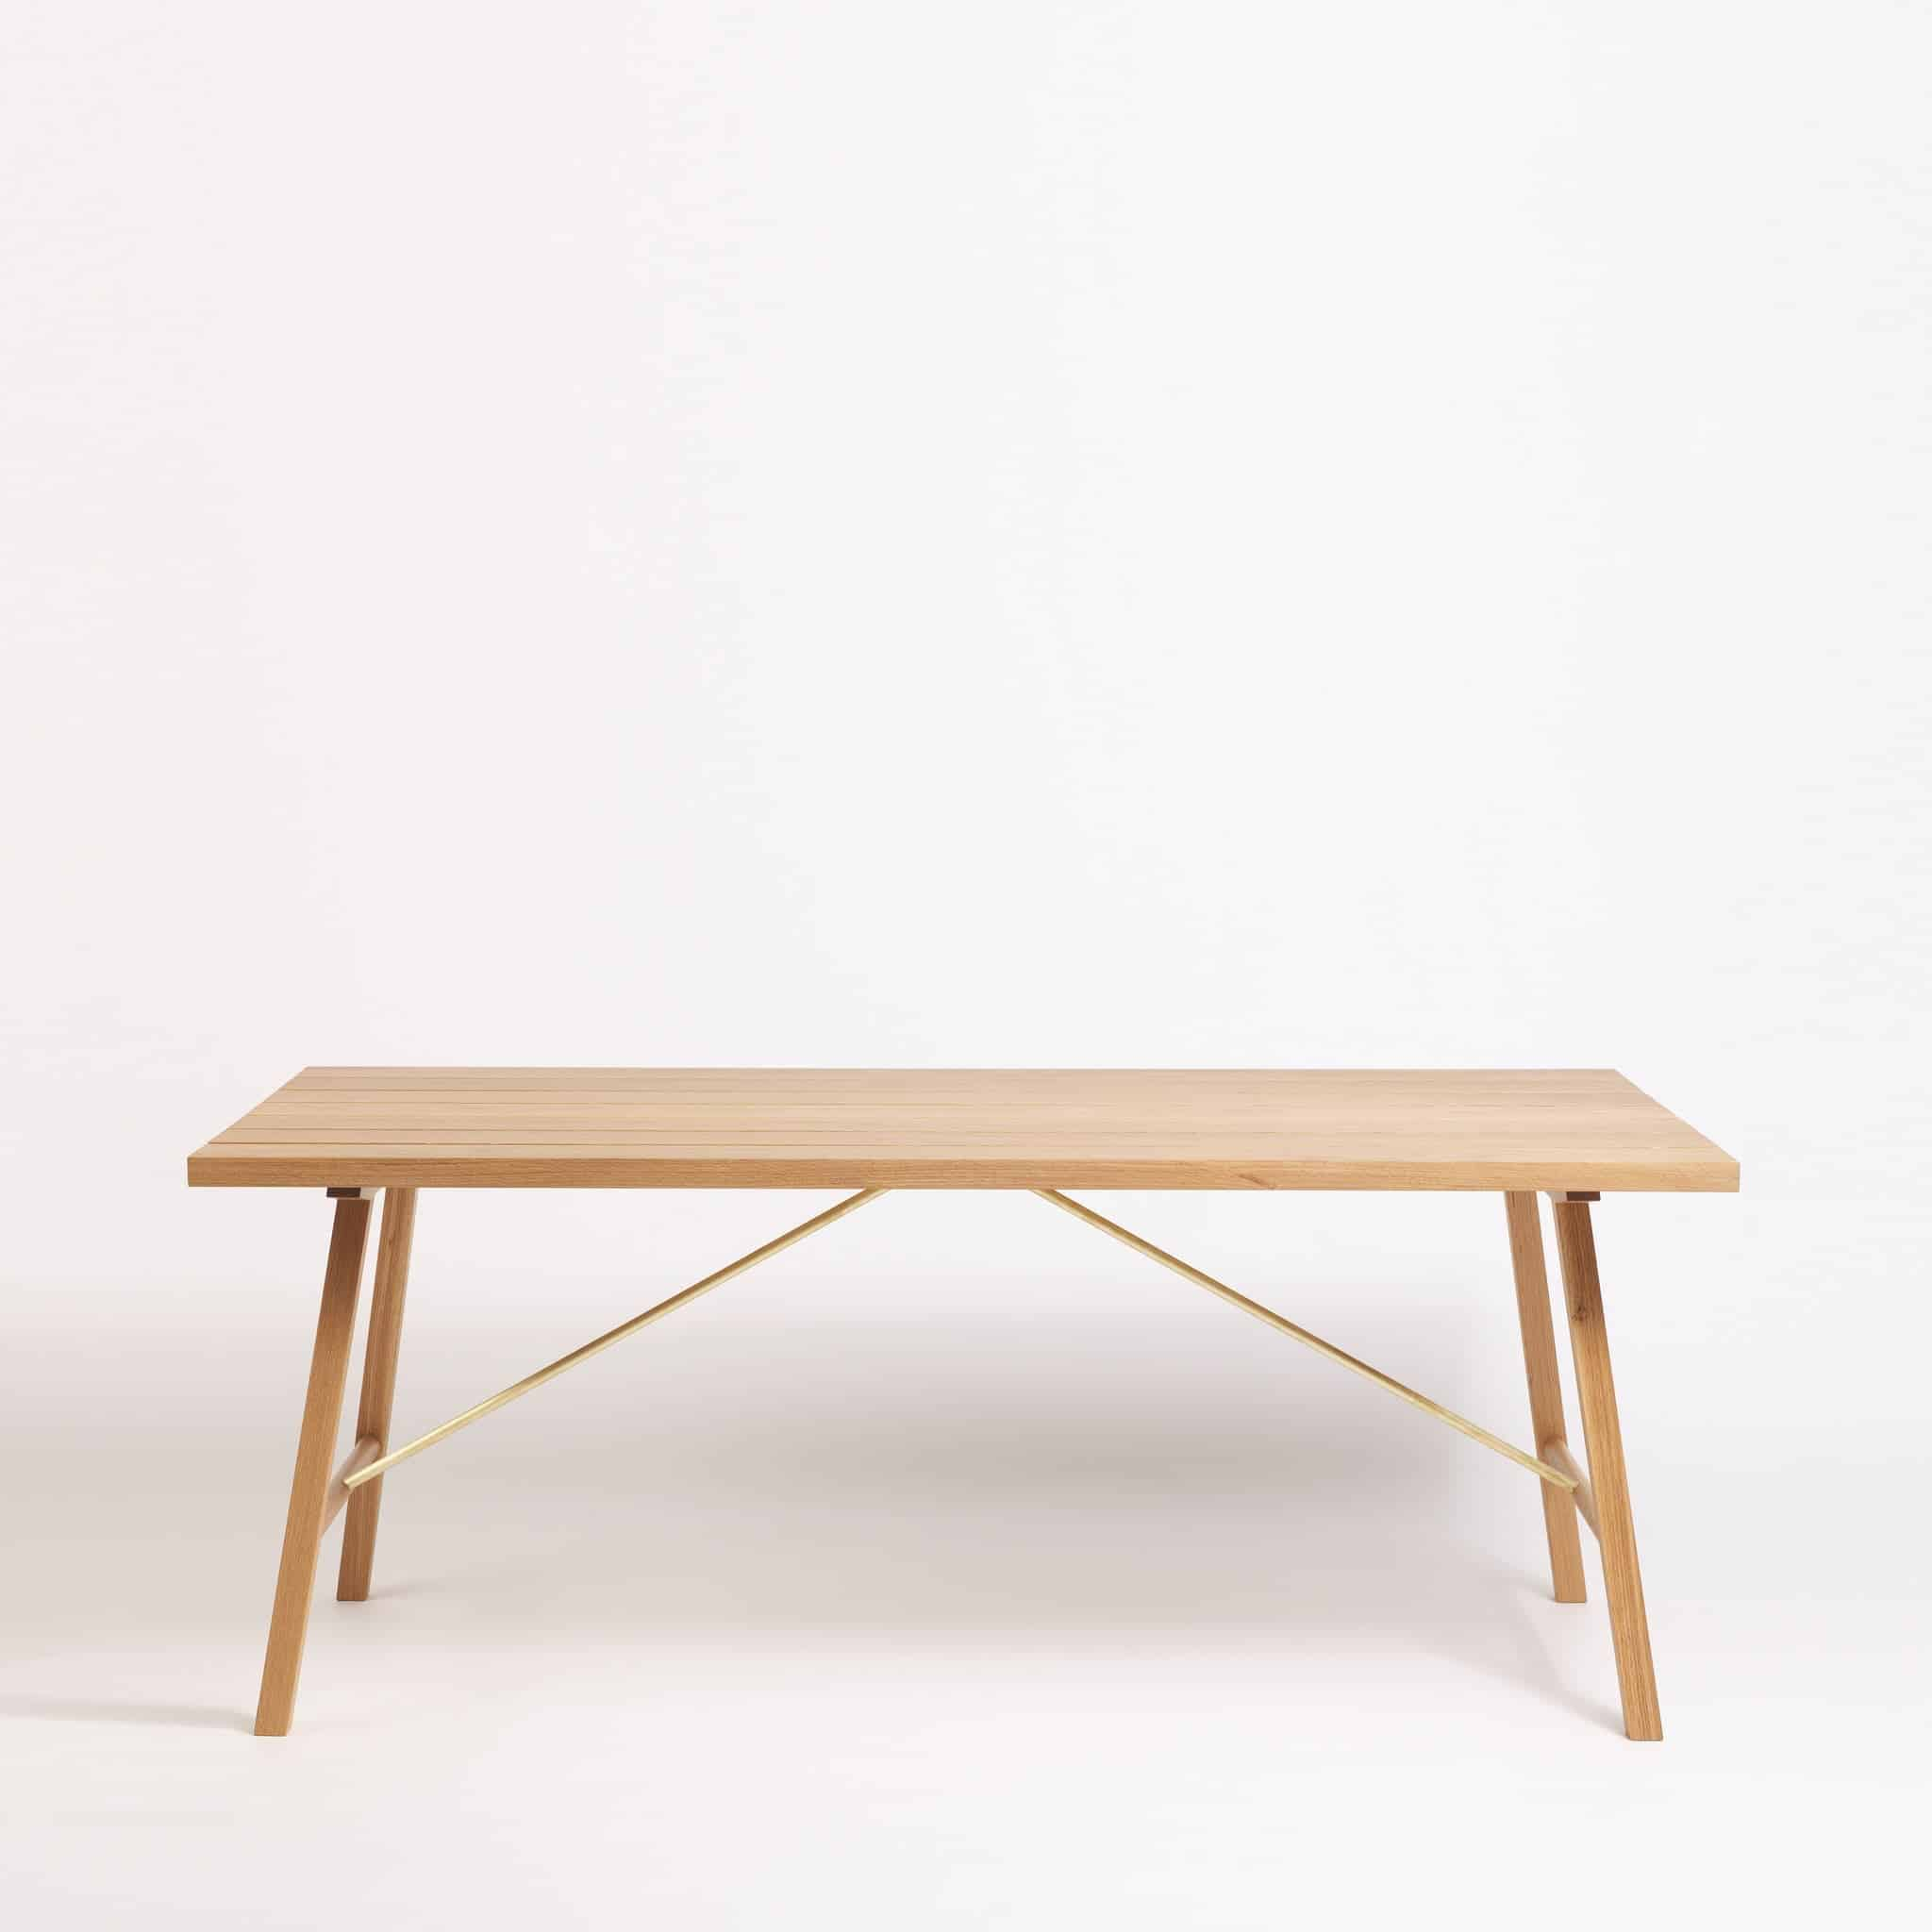 Solid Oak Outdoor Dining Table by Another Country